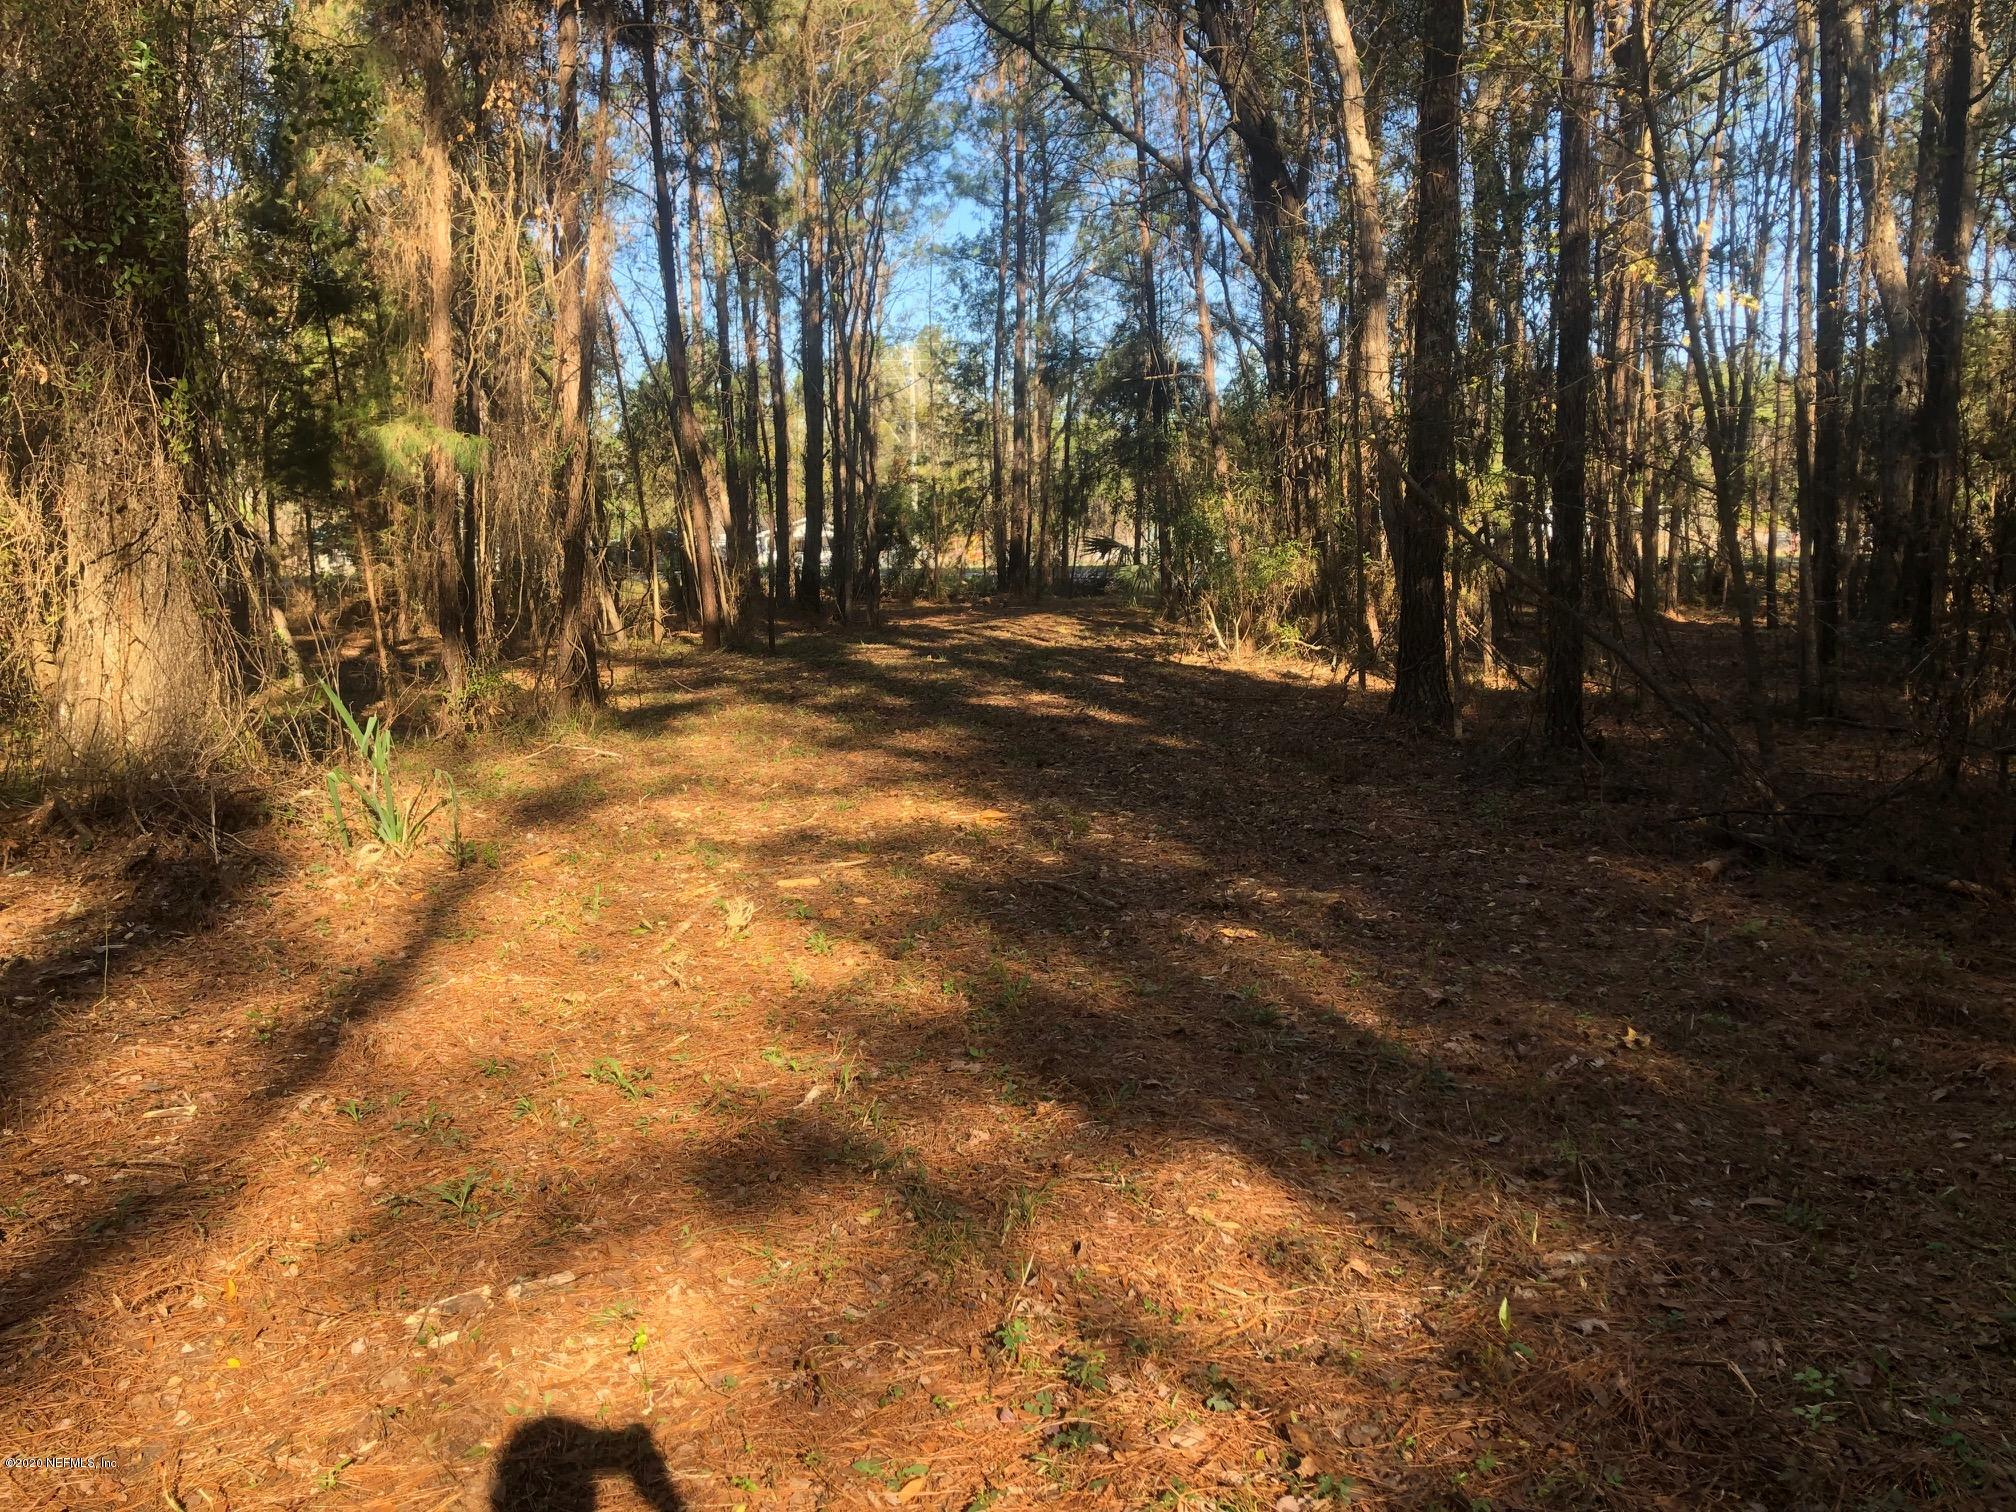 0 STATE ROAD 200, CALLAHAN, FLORIDA 32011, ,Commercial,For sale,STATE ROAD 200,1034396